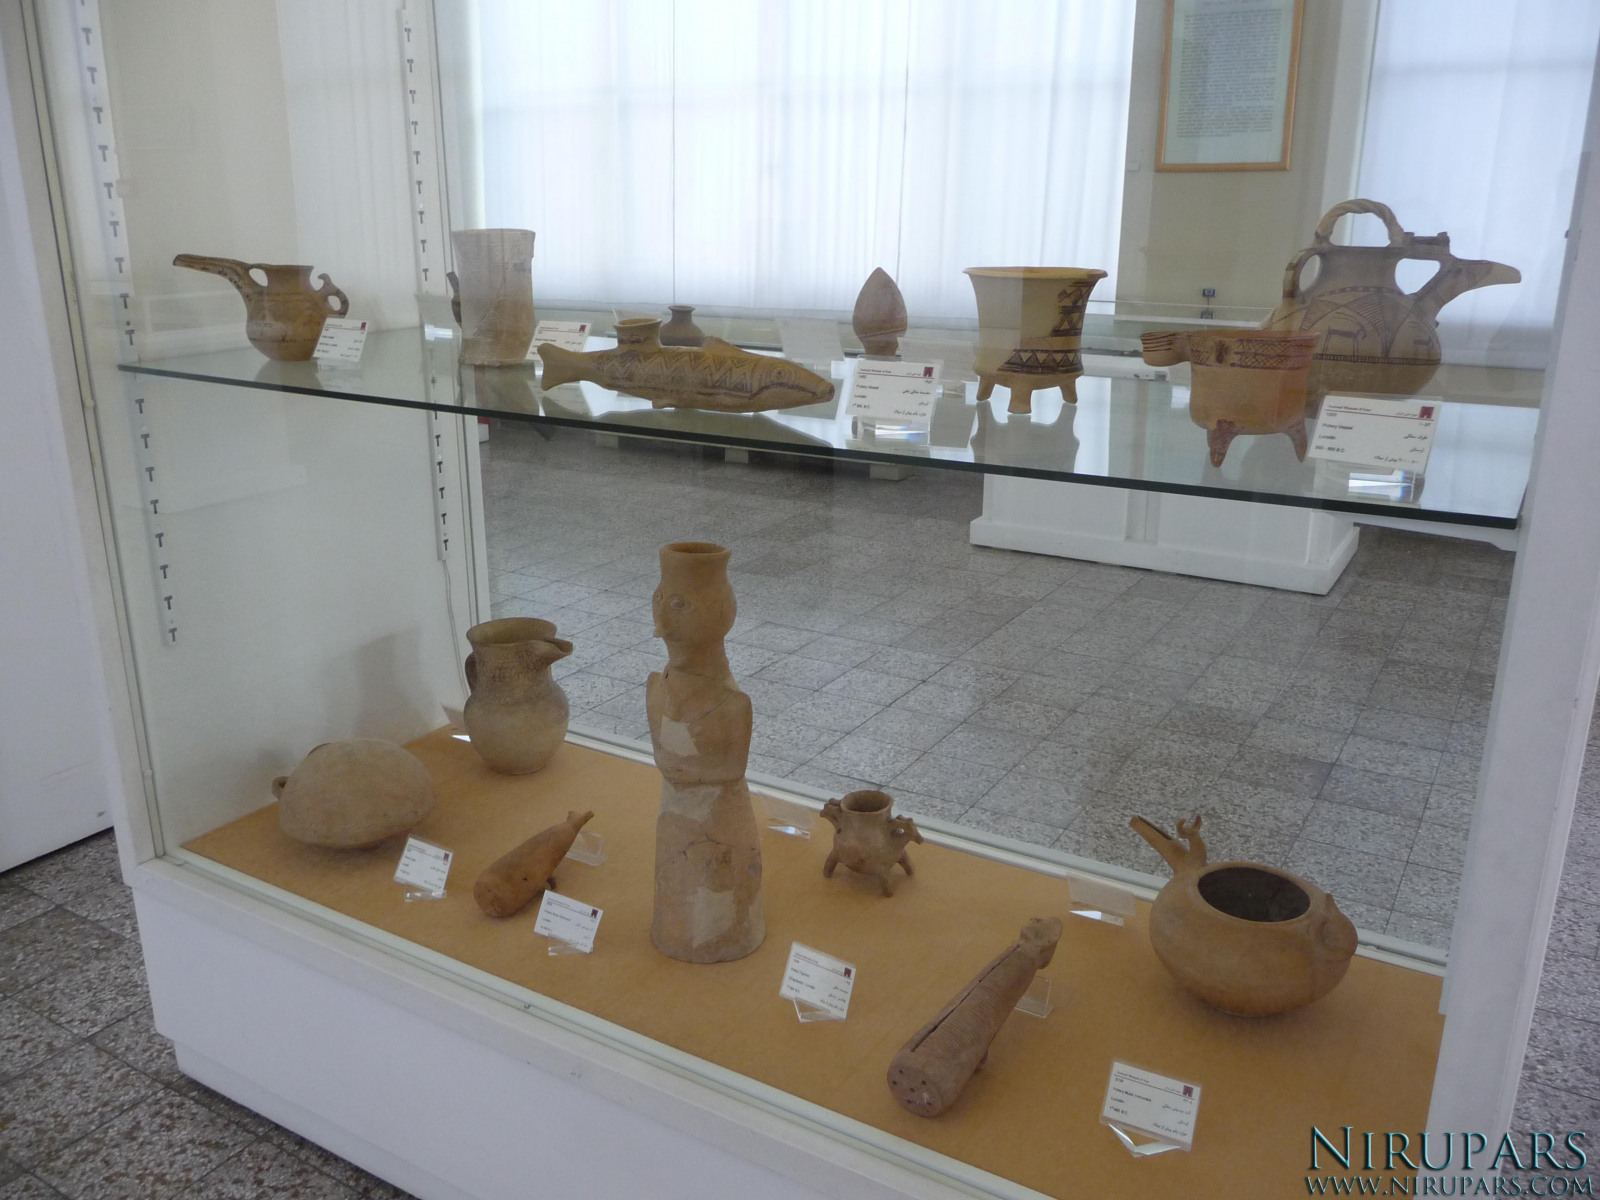 National Museum of Iran - Display Window - Vessels Items Pottery